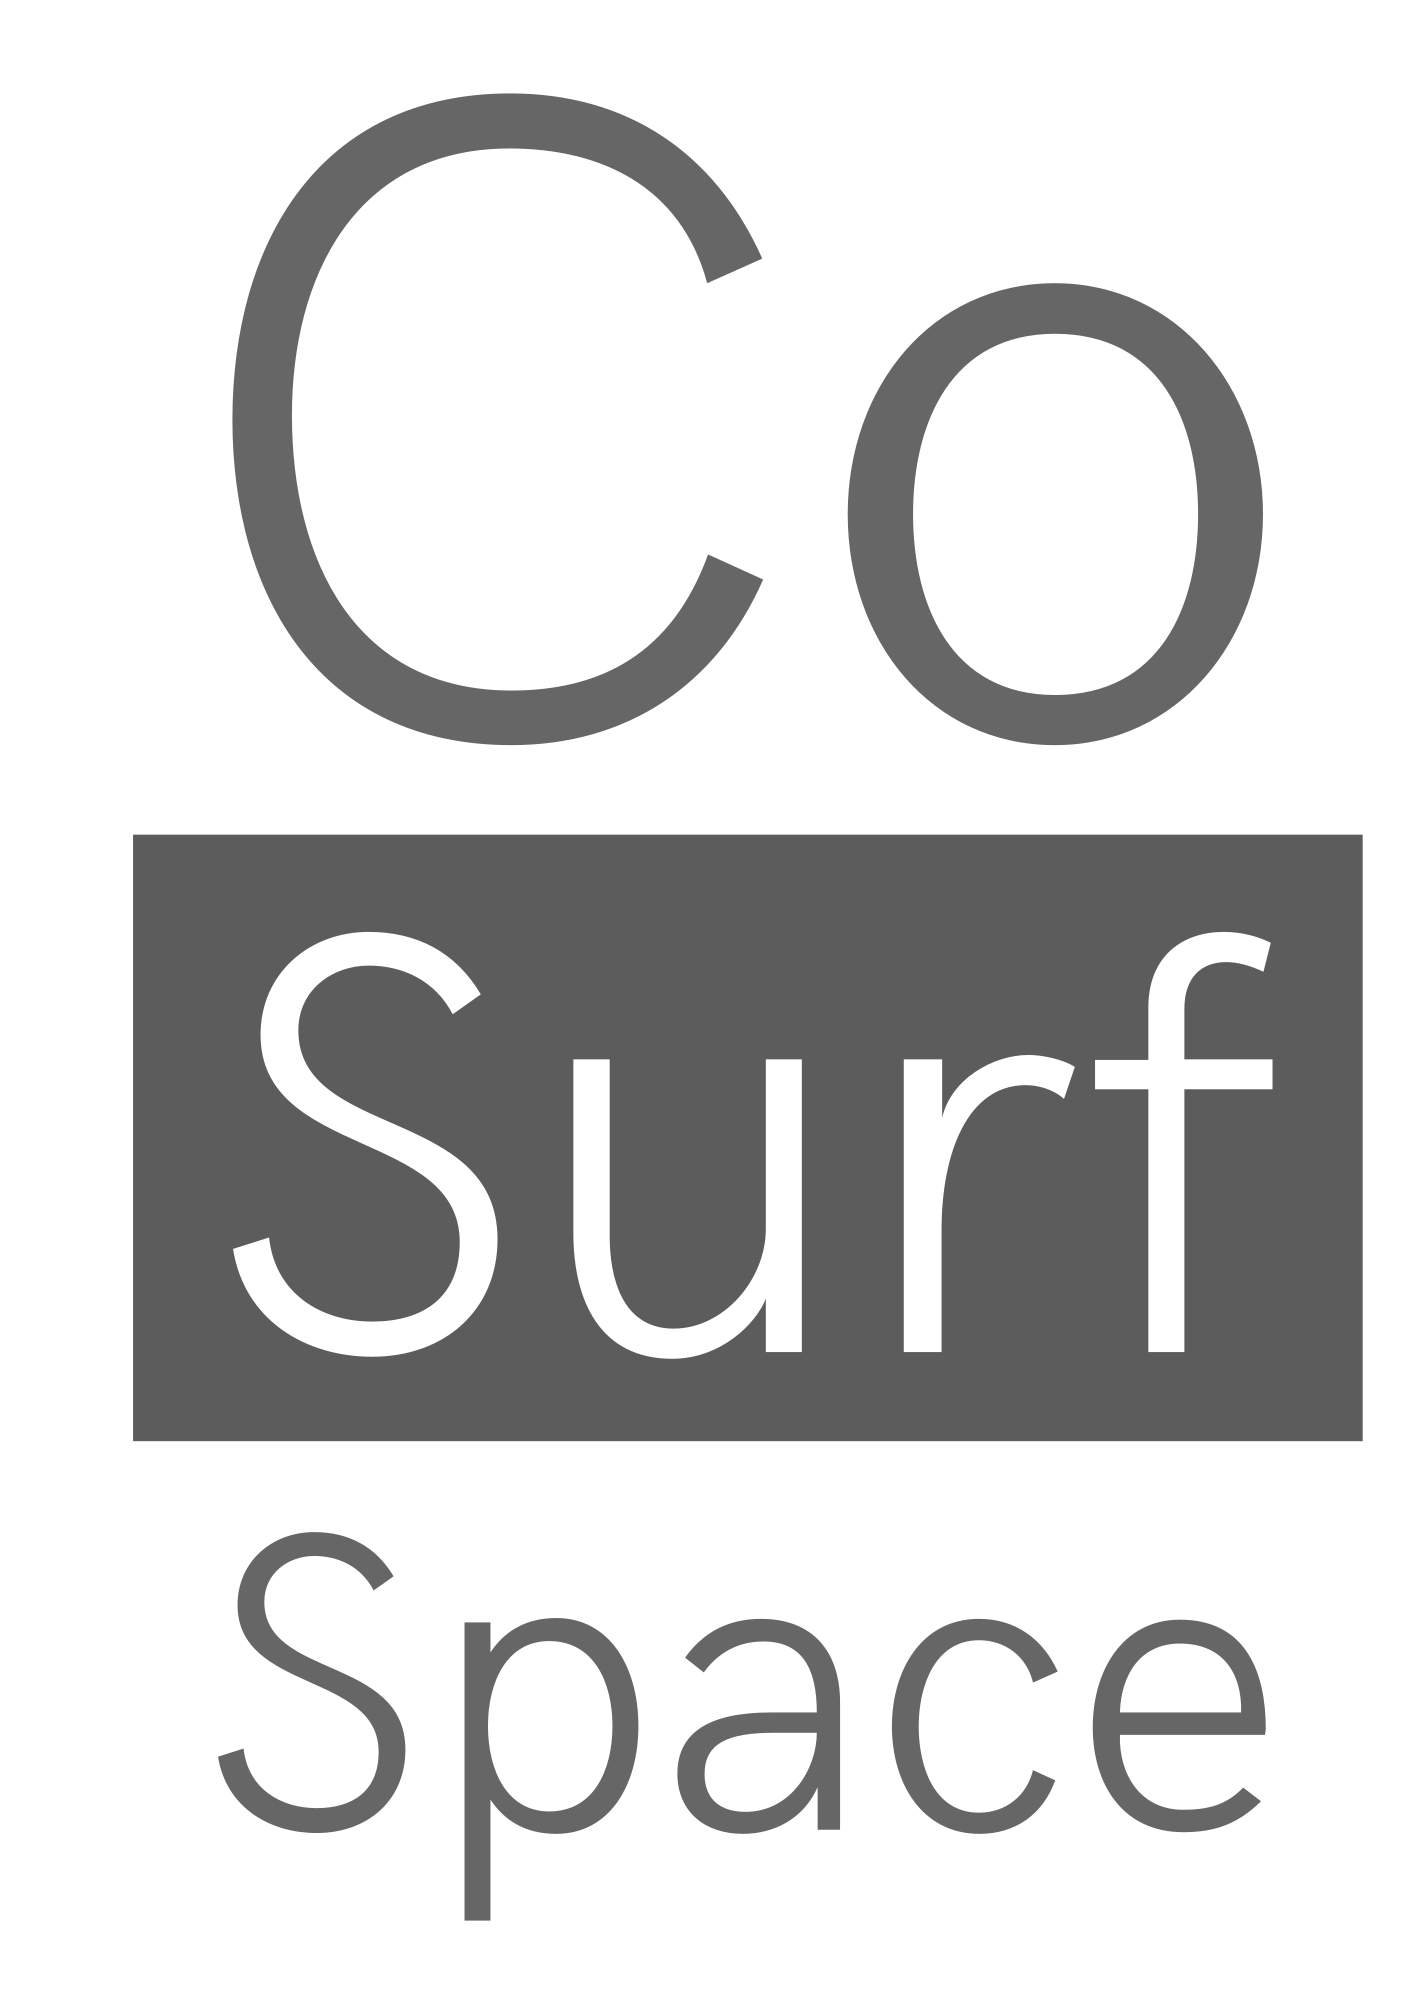 Co-Surf Space Logo